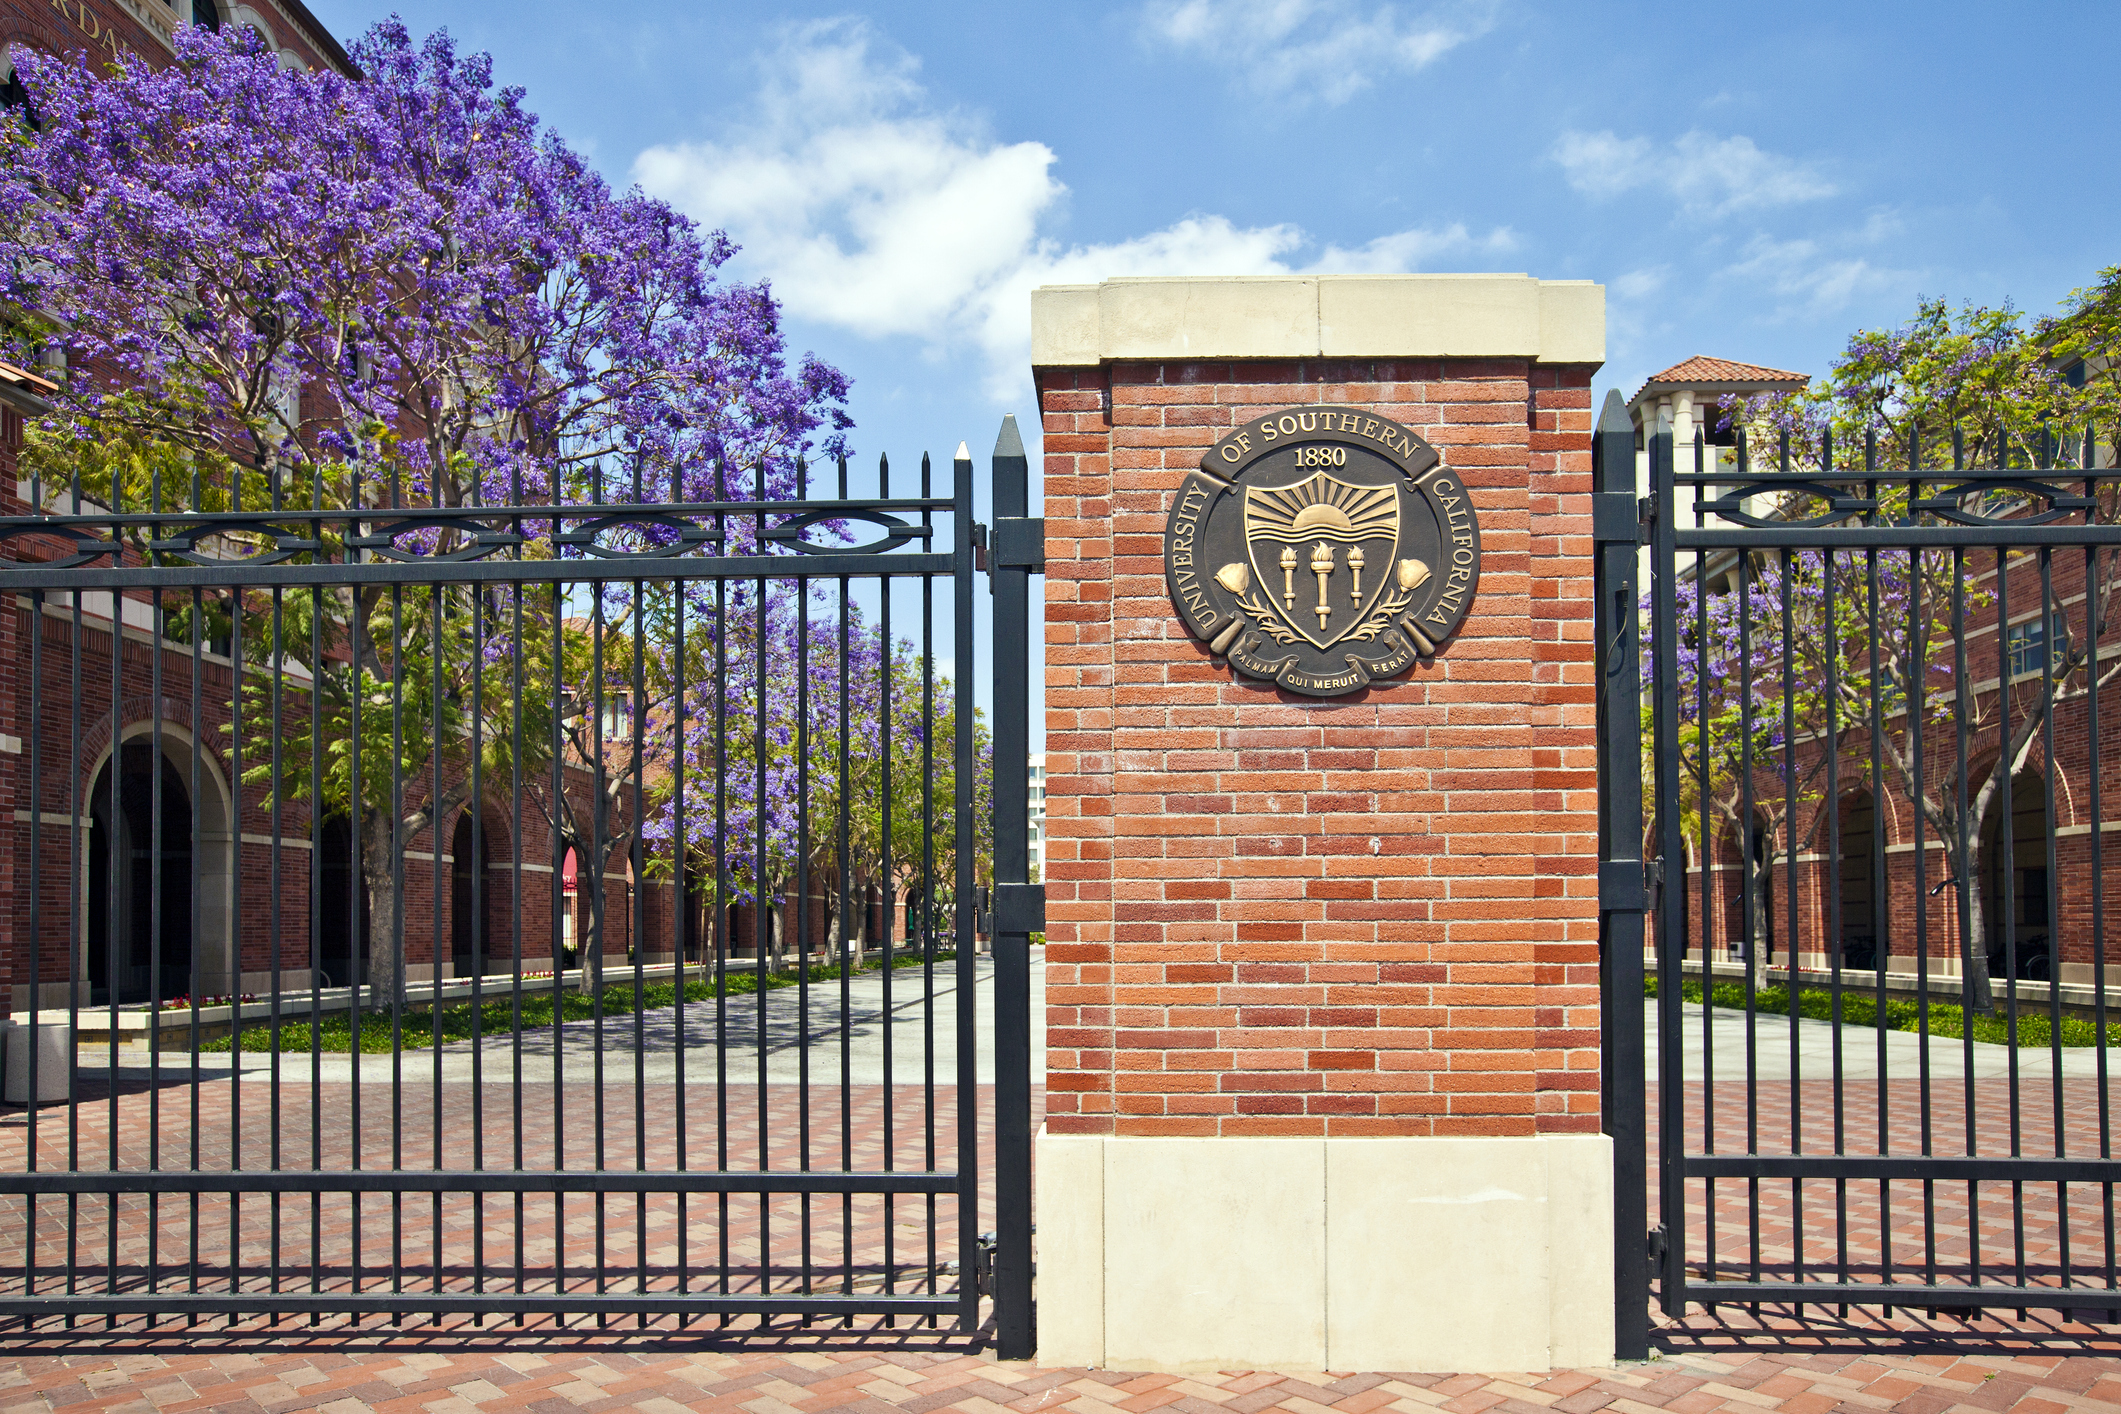 USC, UCLA Take Hardest Line on Students in Admissions